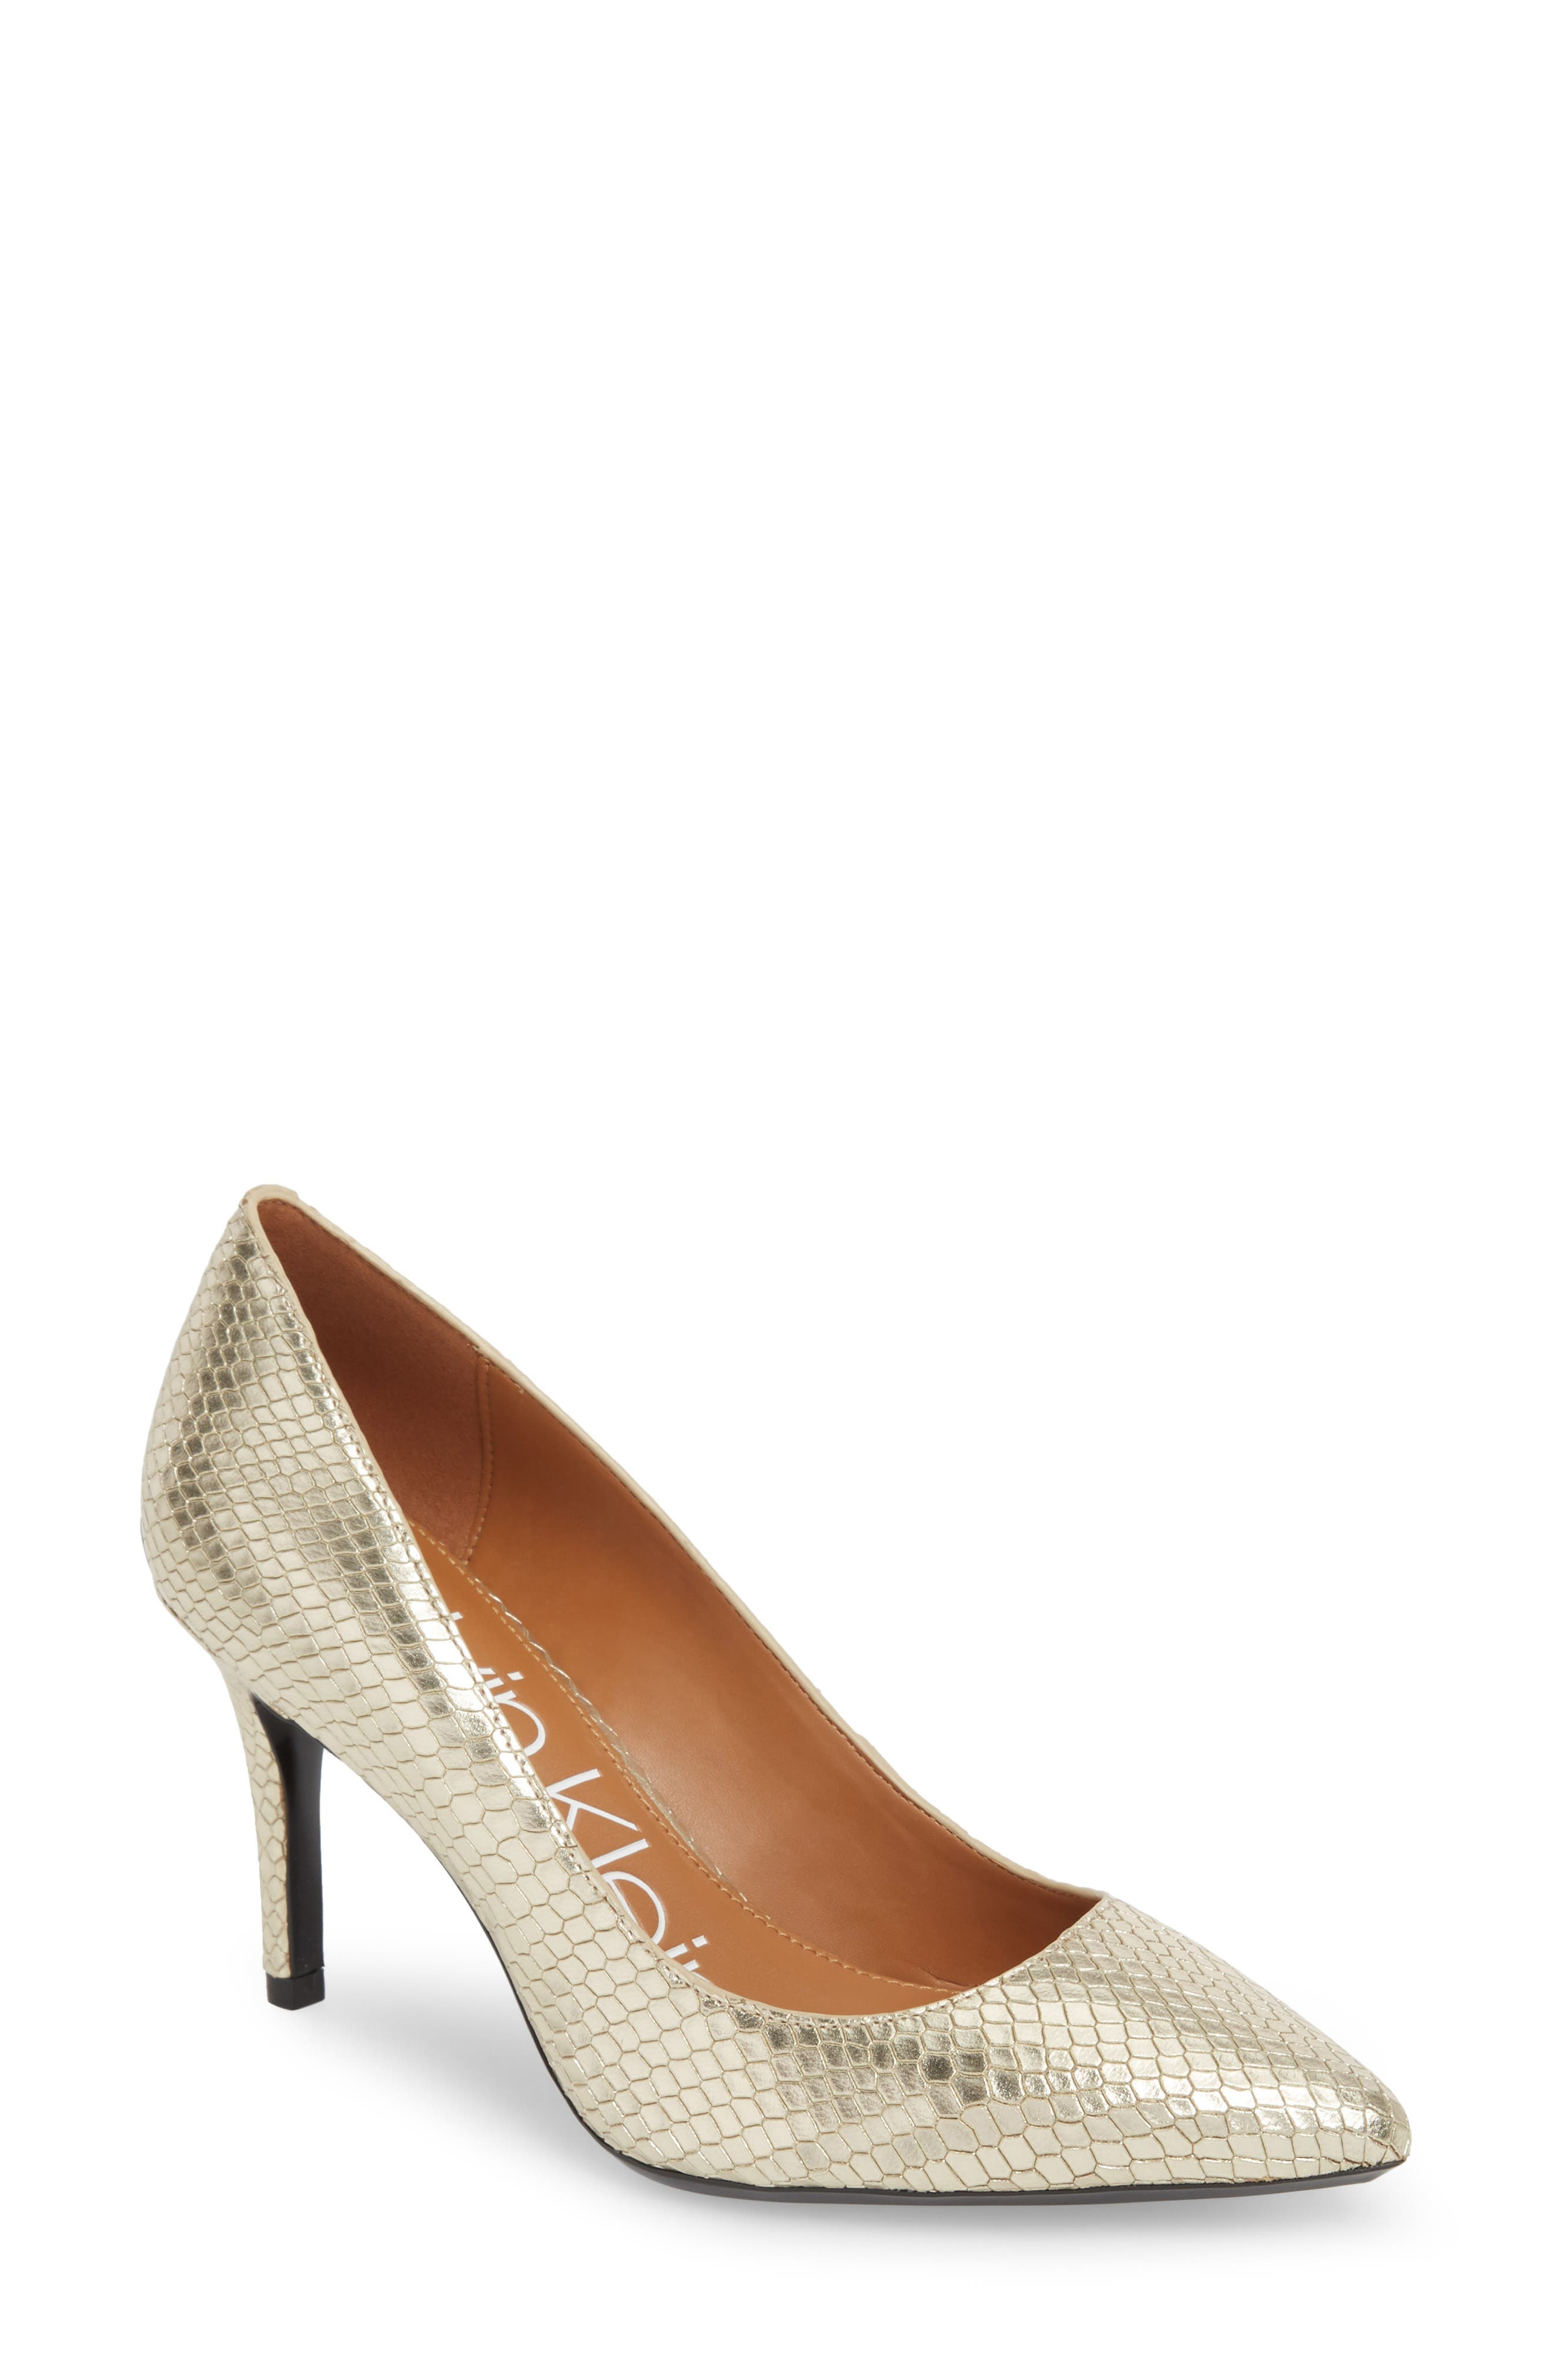 CALVIN KLEIN 'Gayle' Pointy Toe Pump, Main, color, SOFT GOLD LEATHER